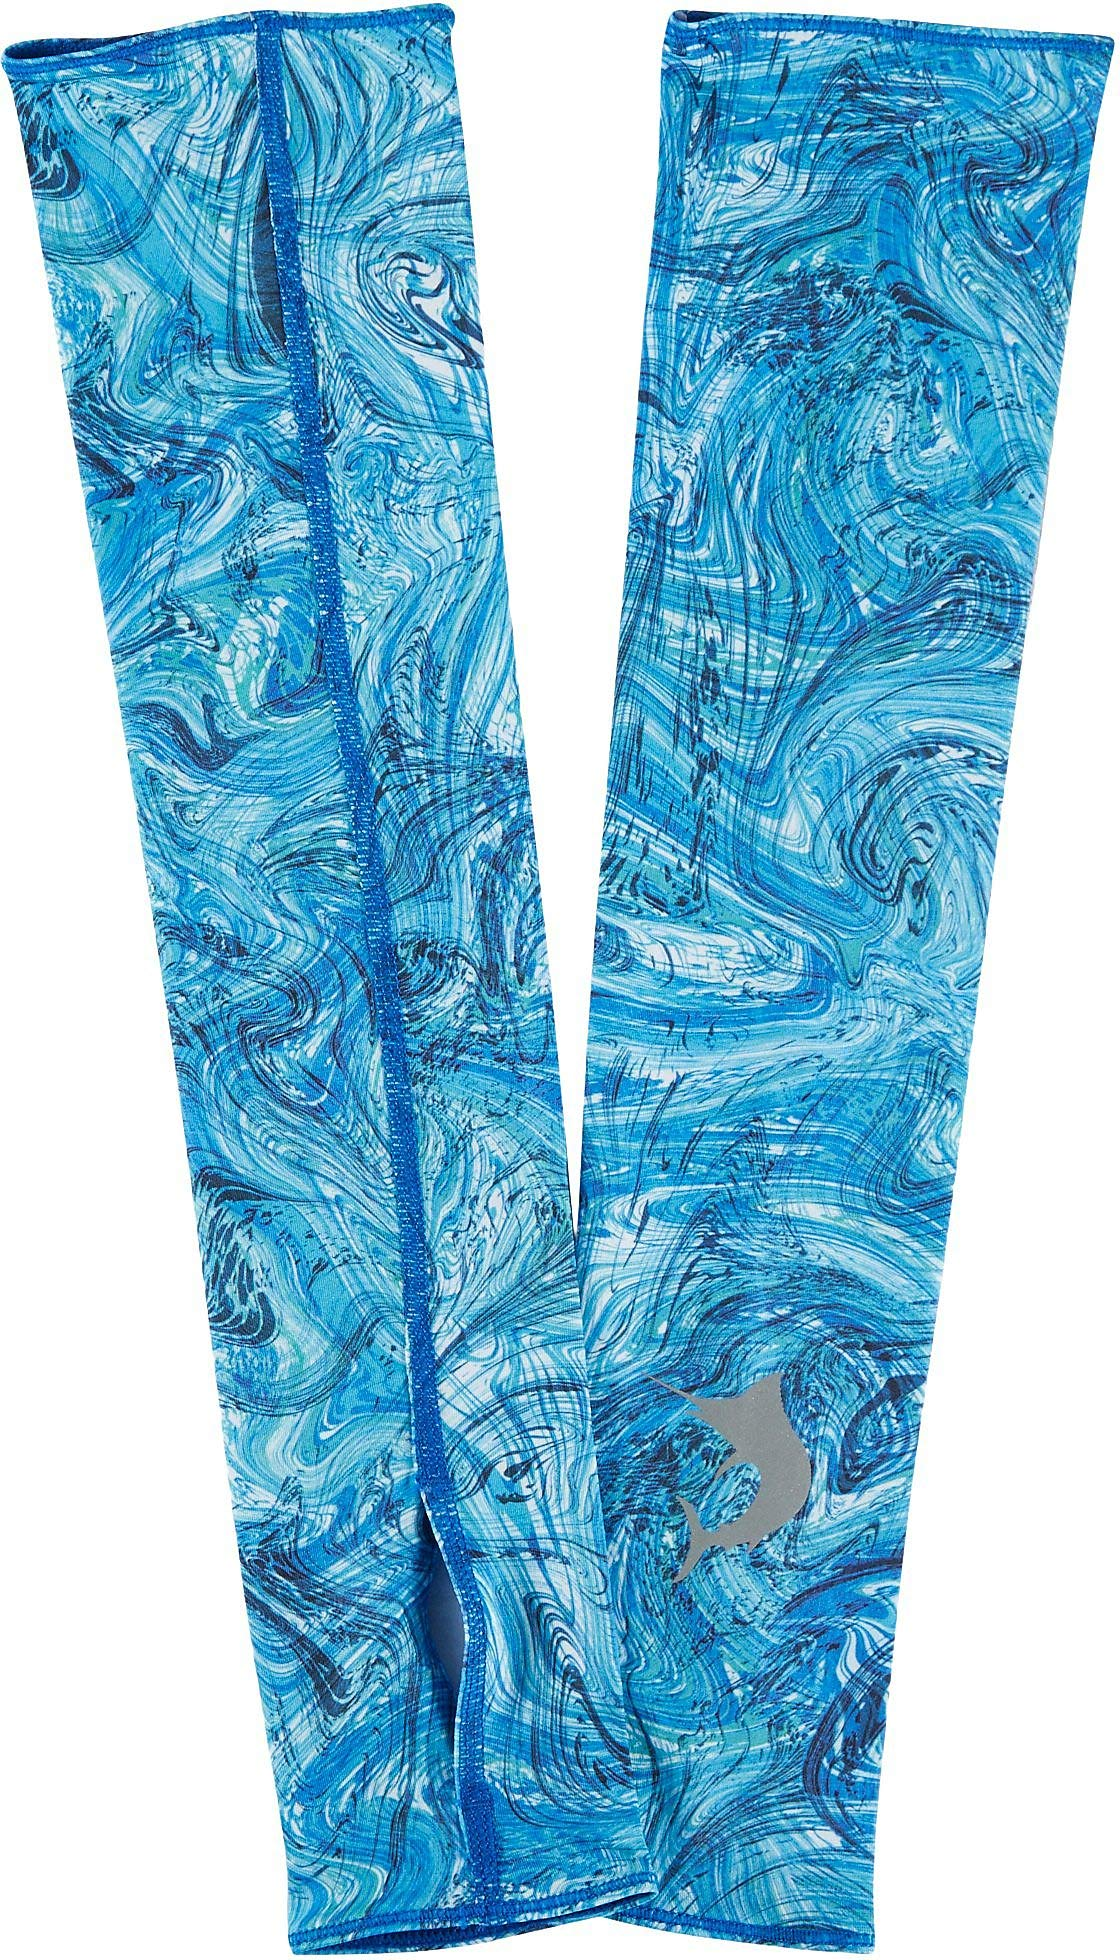 NWT $20 Reel Legends Mens Keep It Cool Abstract Action Sun Sleeves SZ SMALL//MED